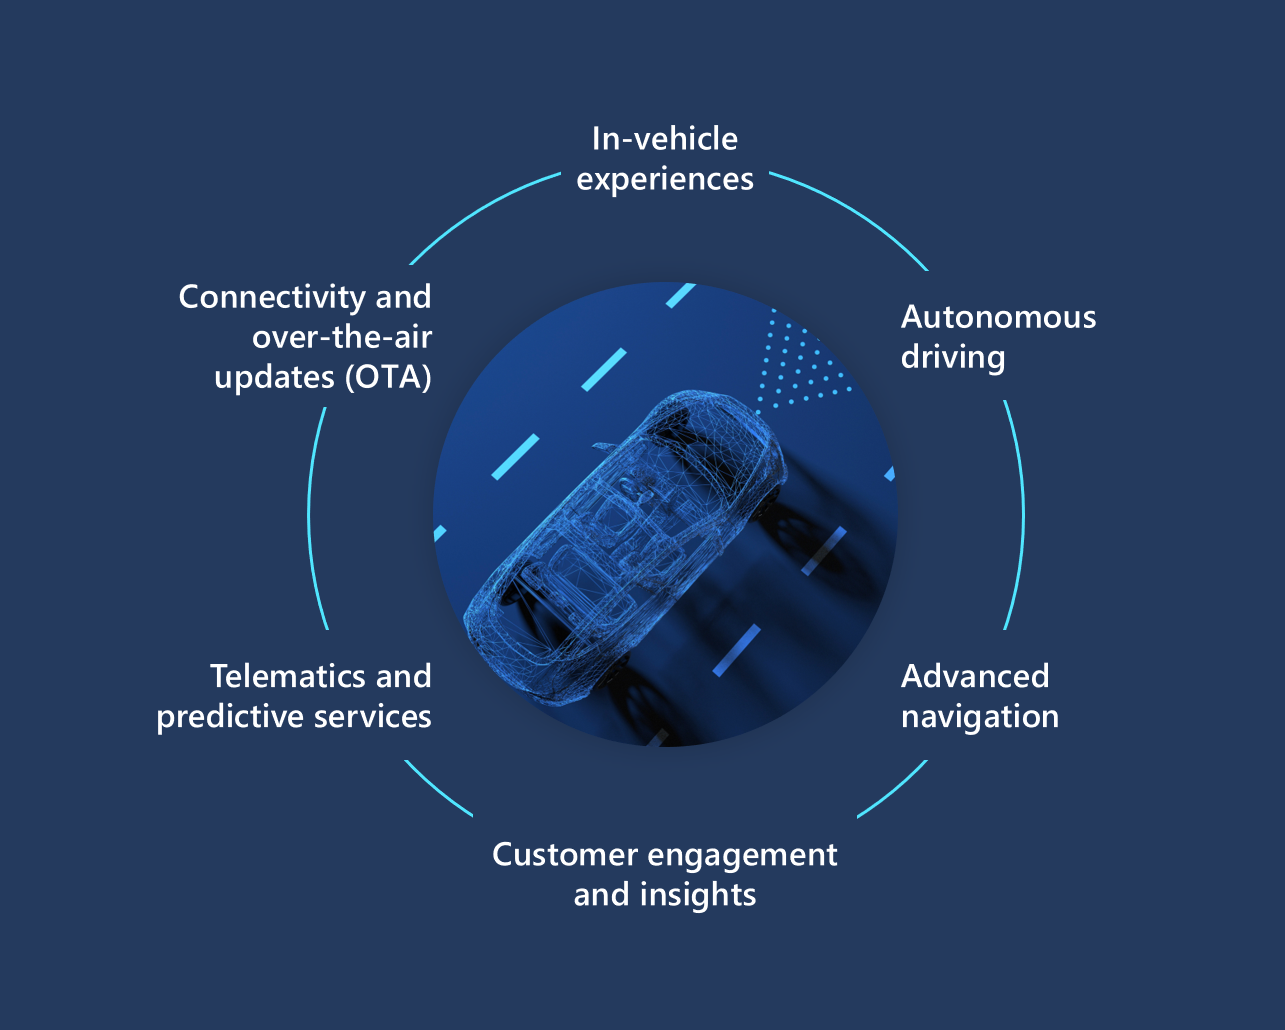 An image showing the aspects of the Microsoft Connected Vehicle Platform.